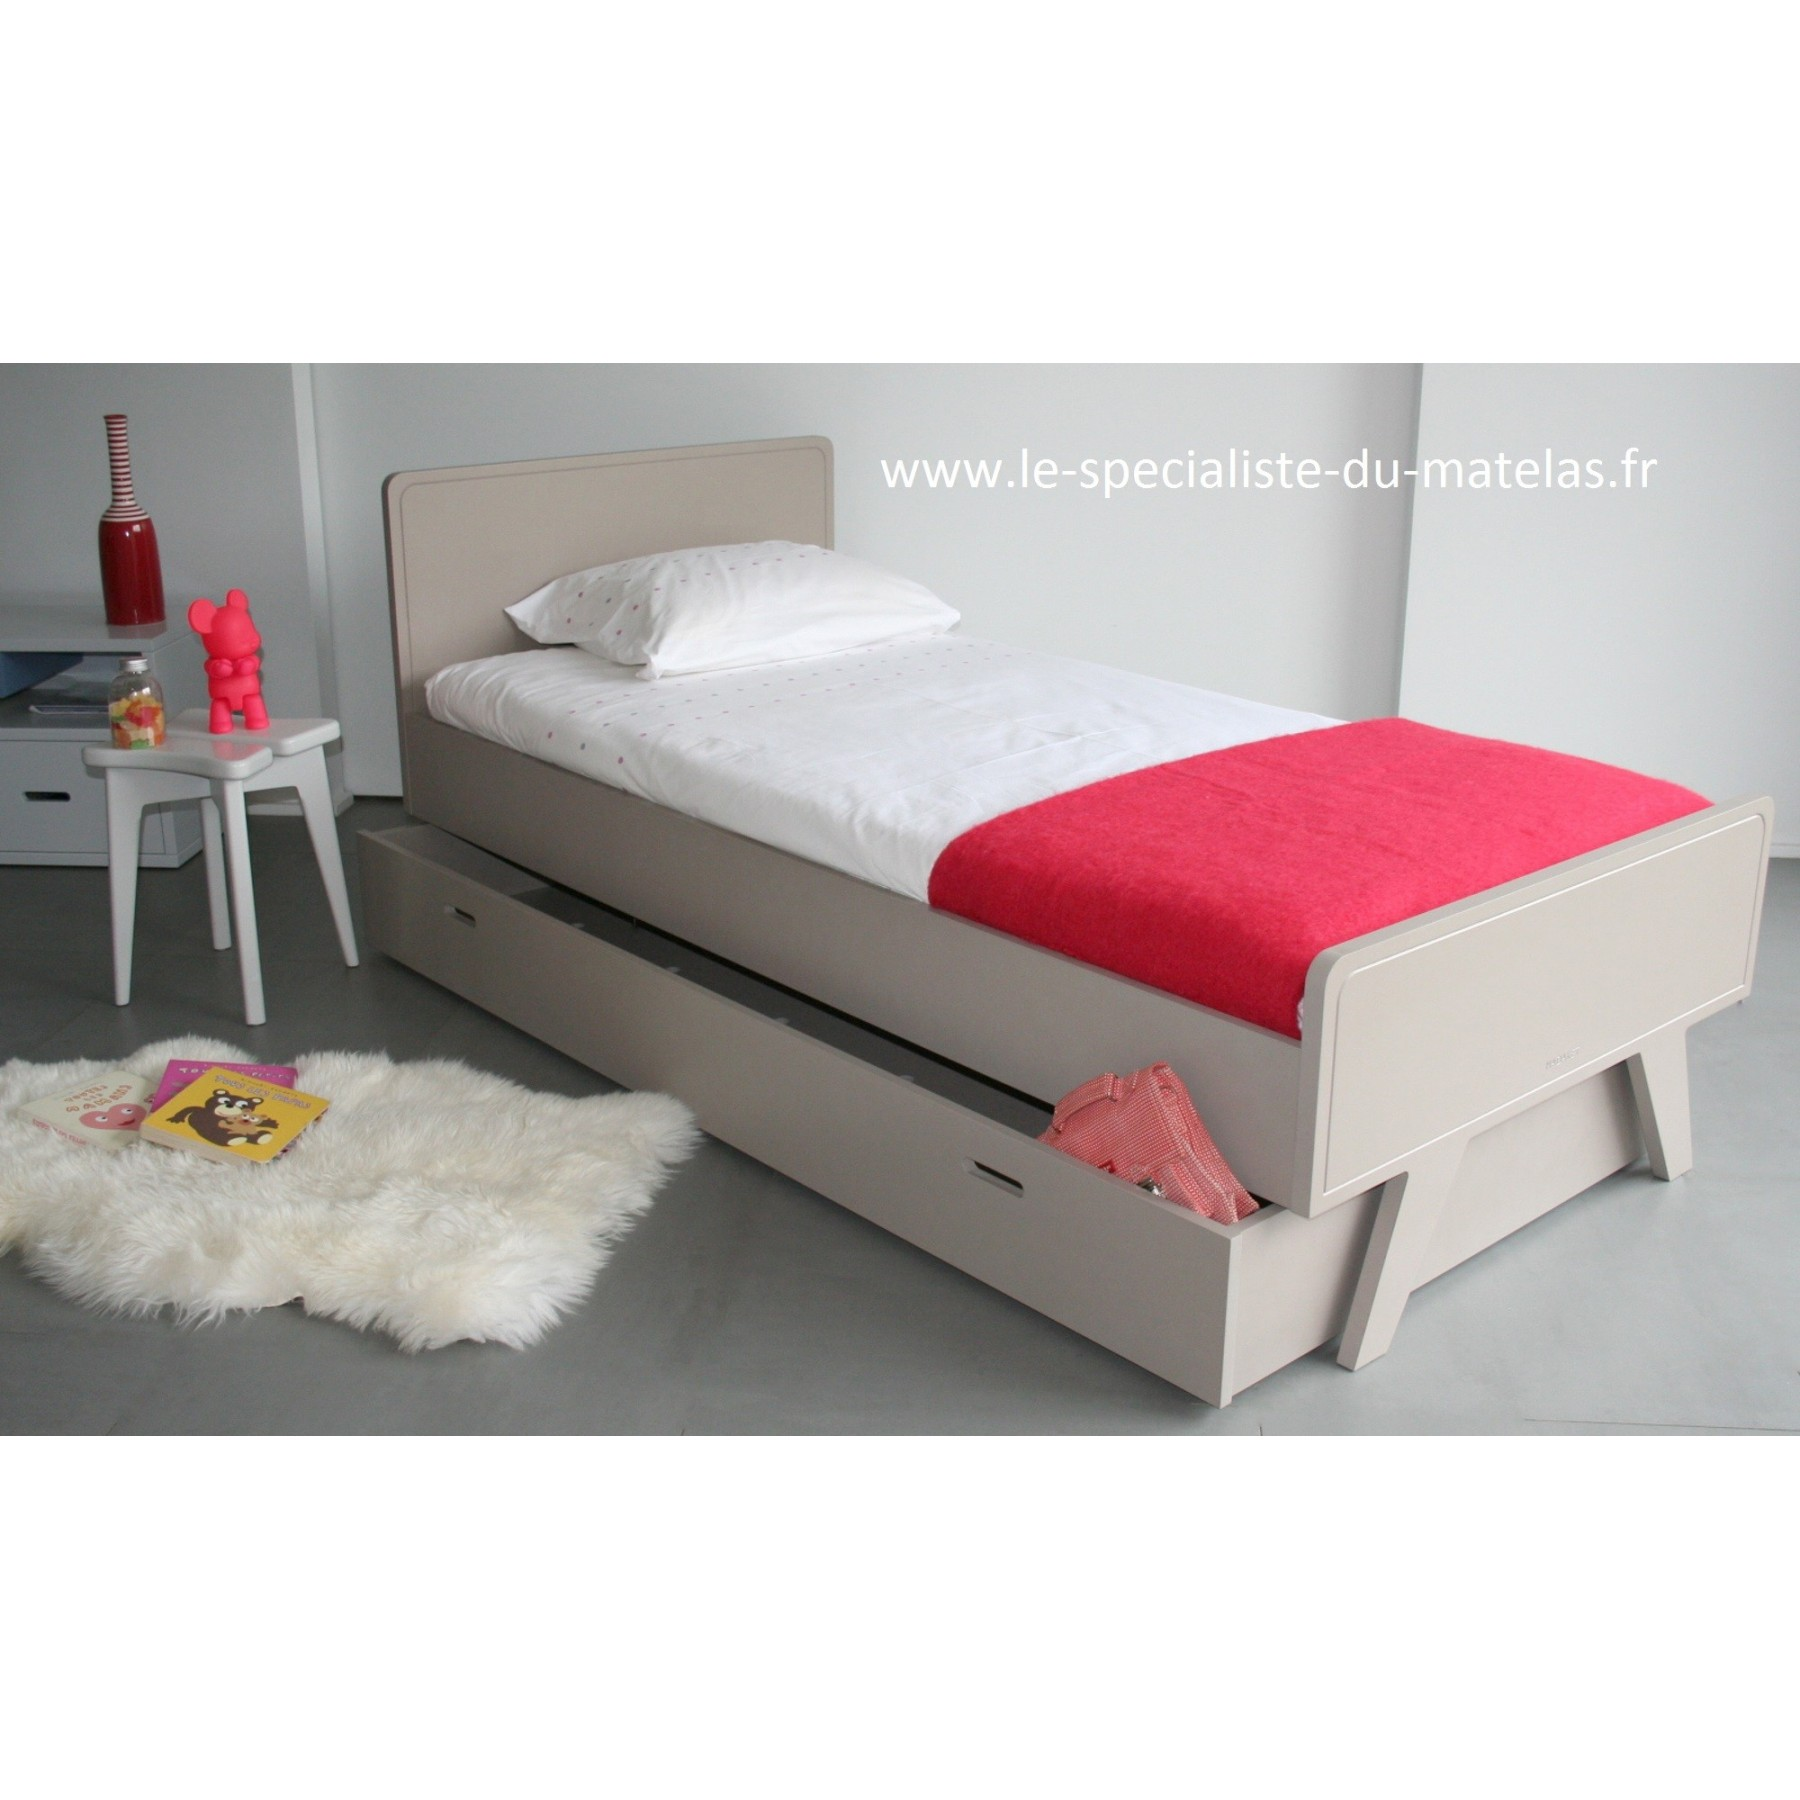 lit enfant mathy by bols mod le madavin d couvrir au le sp cialiste du matelas. Black Bedroom Furniture Sets. Home Design Ideas